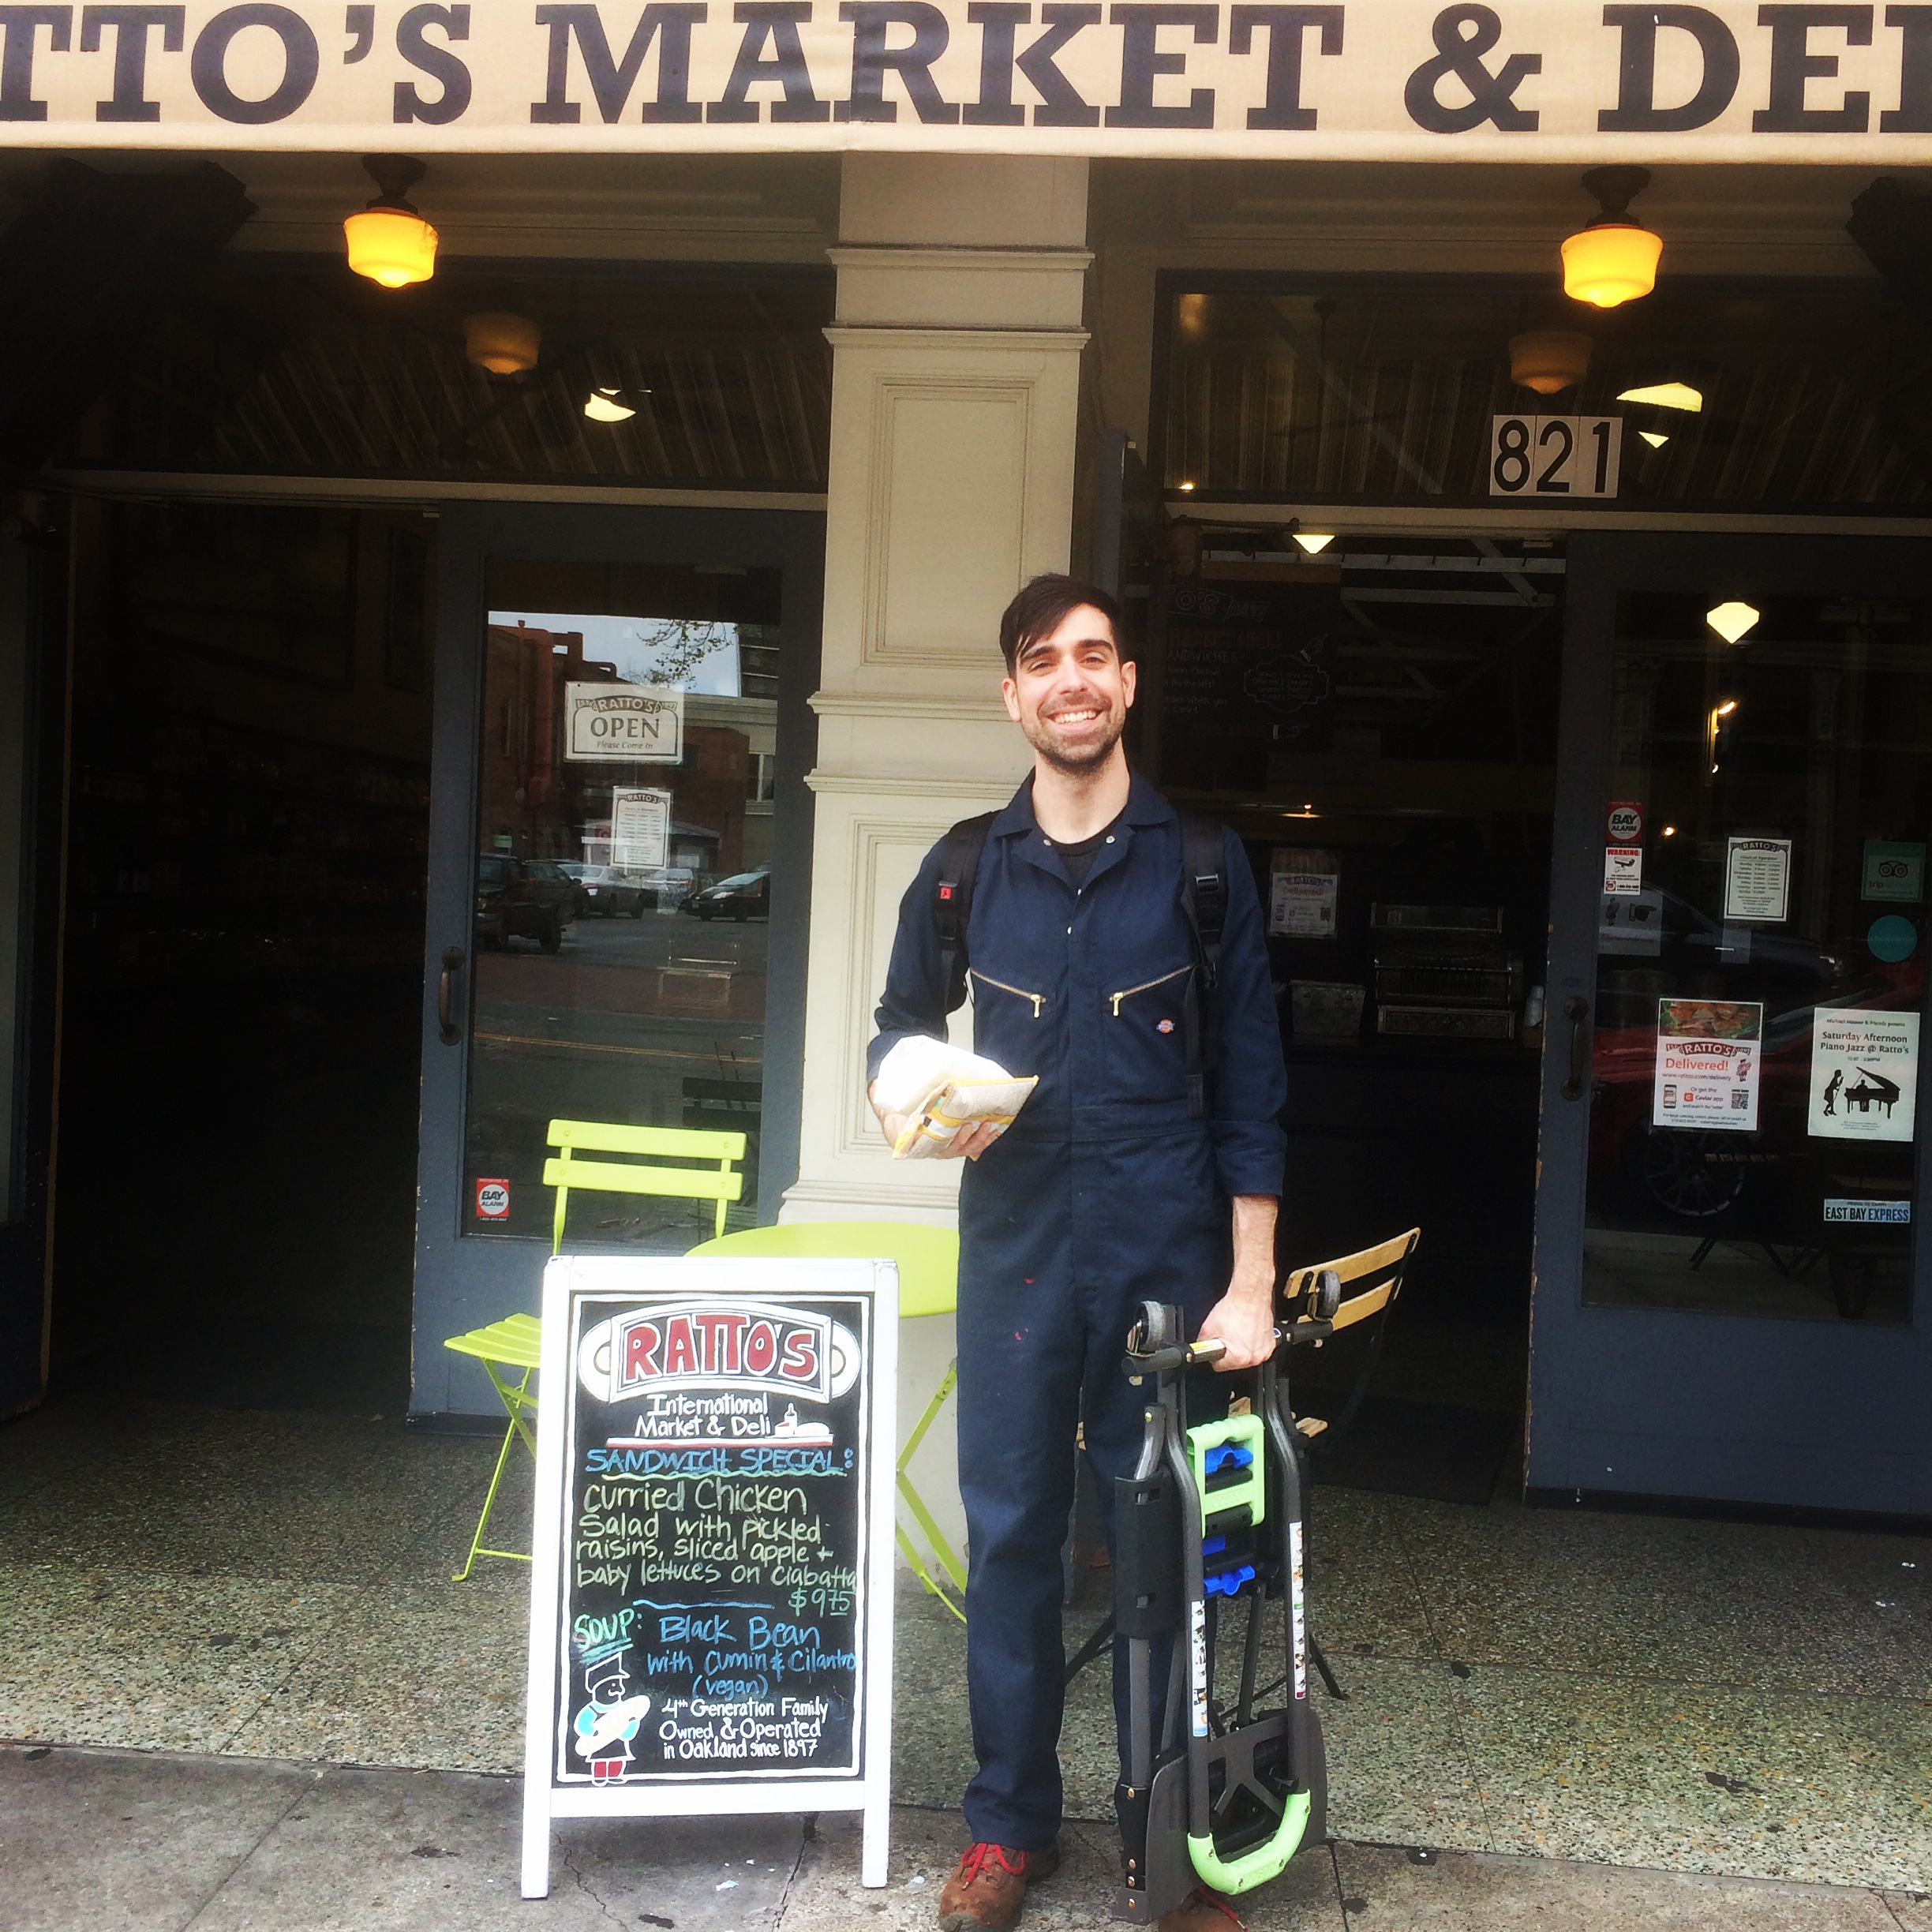 Trey post-delivery, pre-sandwich at Ratto's International Market & Deli in Old Oakland.